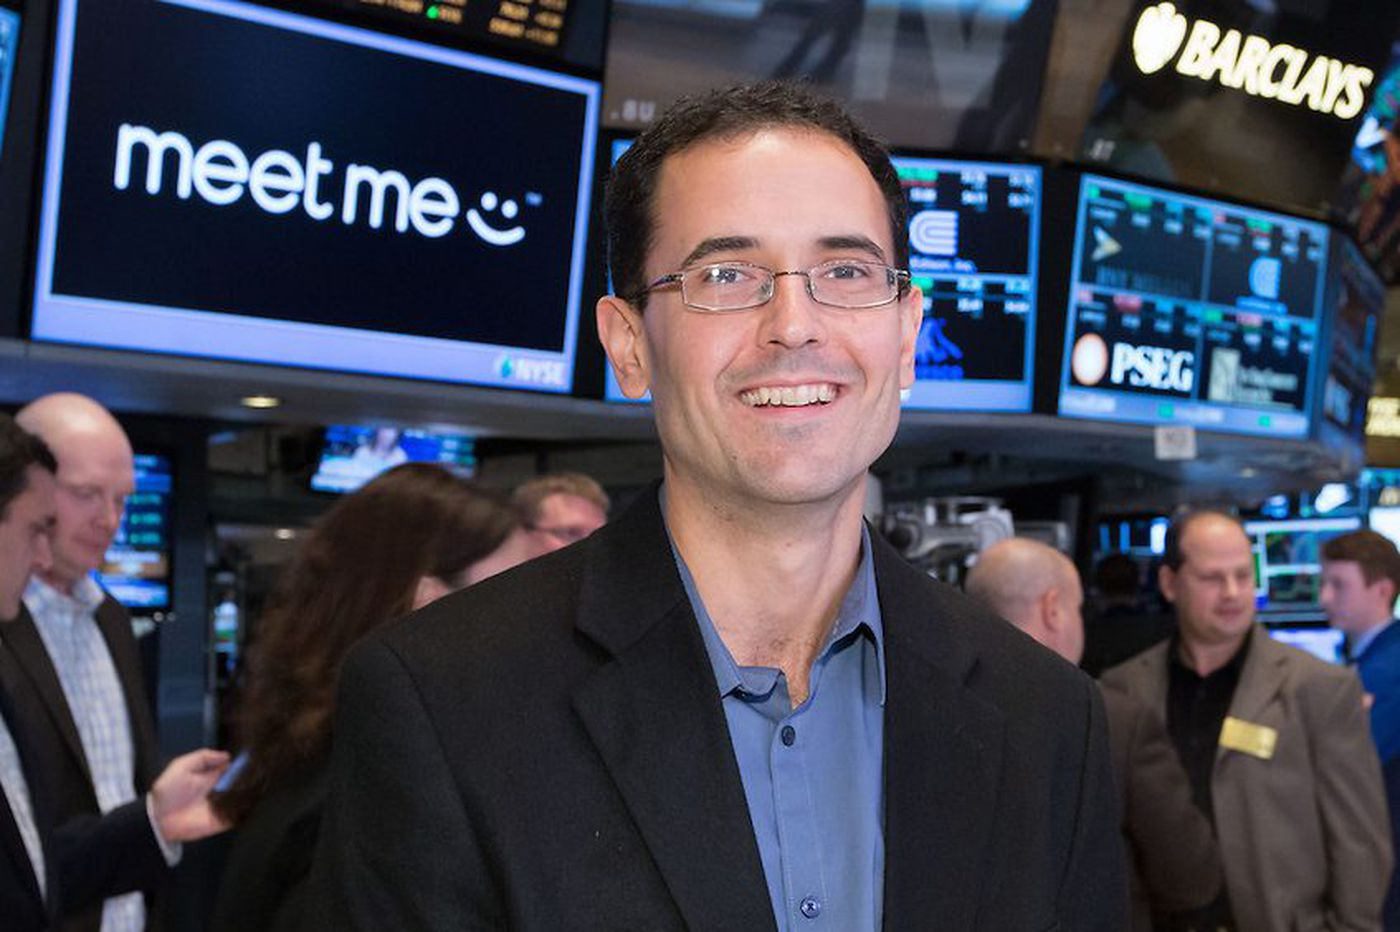 Meet Group's link-up site veers into live streaming video and sees its stock jump